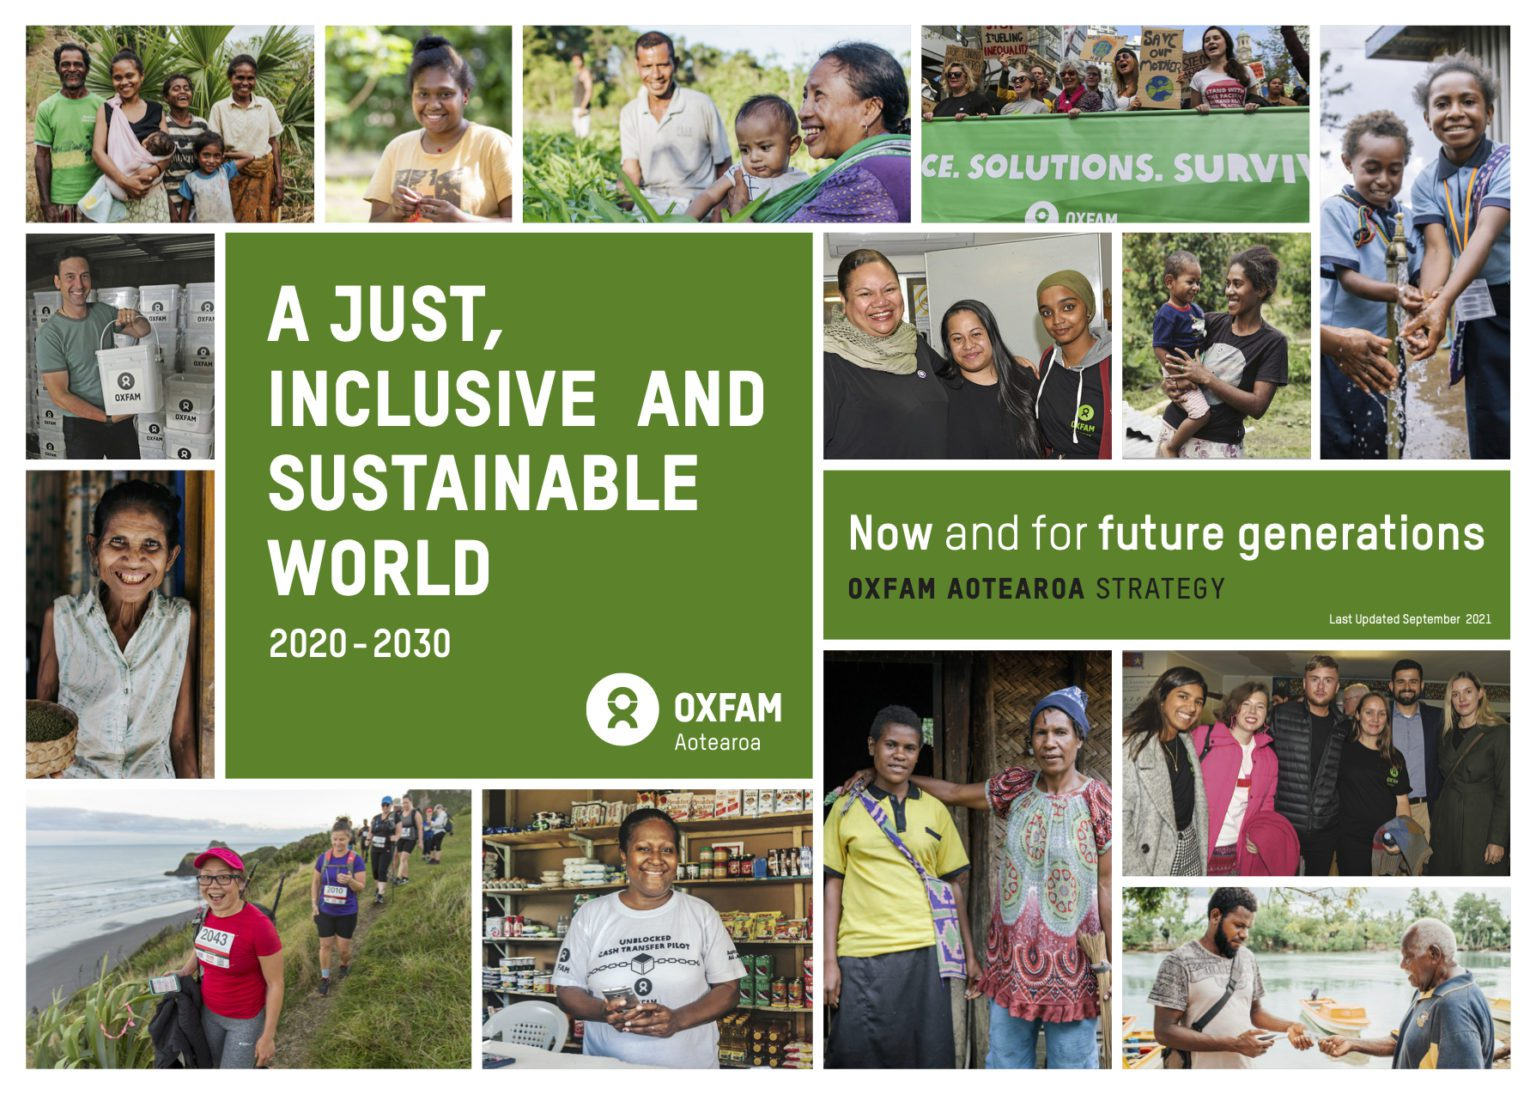 OAo Strategy title page image, a collage of images with text that reads 'A just, inclusive and sustainable world'.